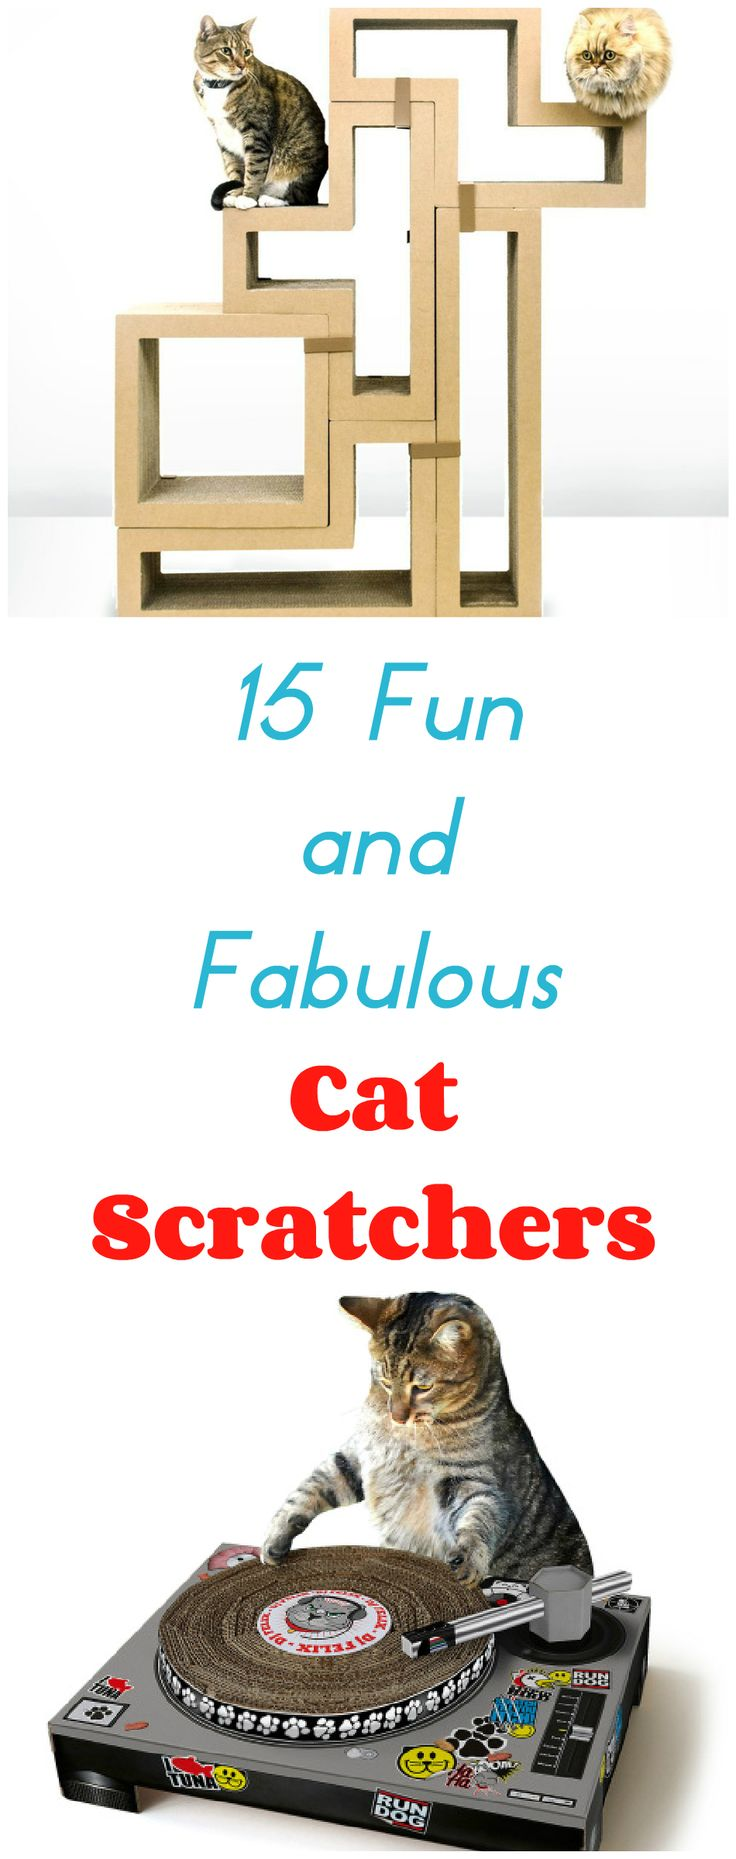 15 Best Cat Scratching Posts - From Fun To Fabulous ... see more at PetsLady.com ... The FUN site for Animal Lovers